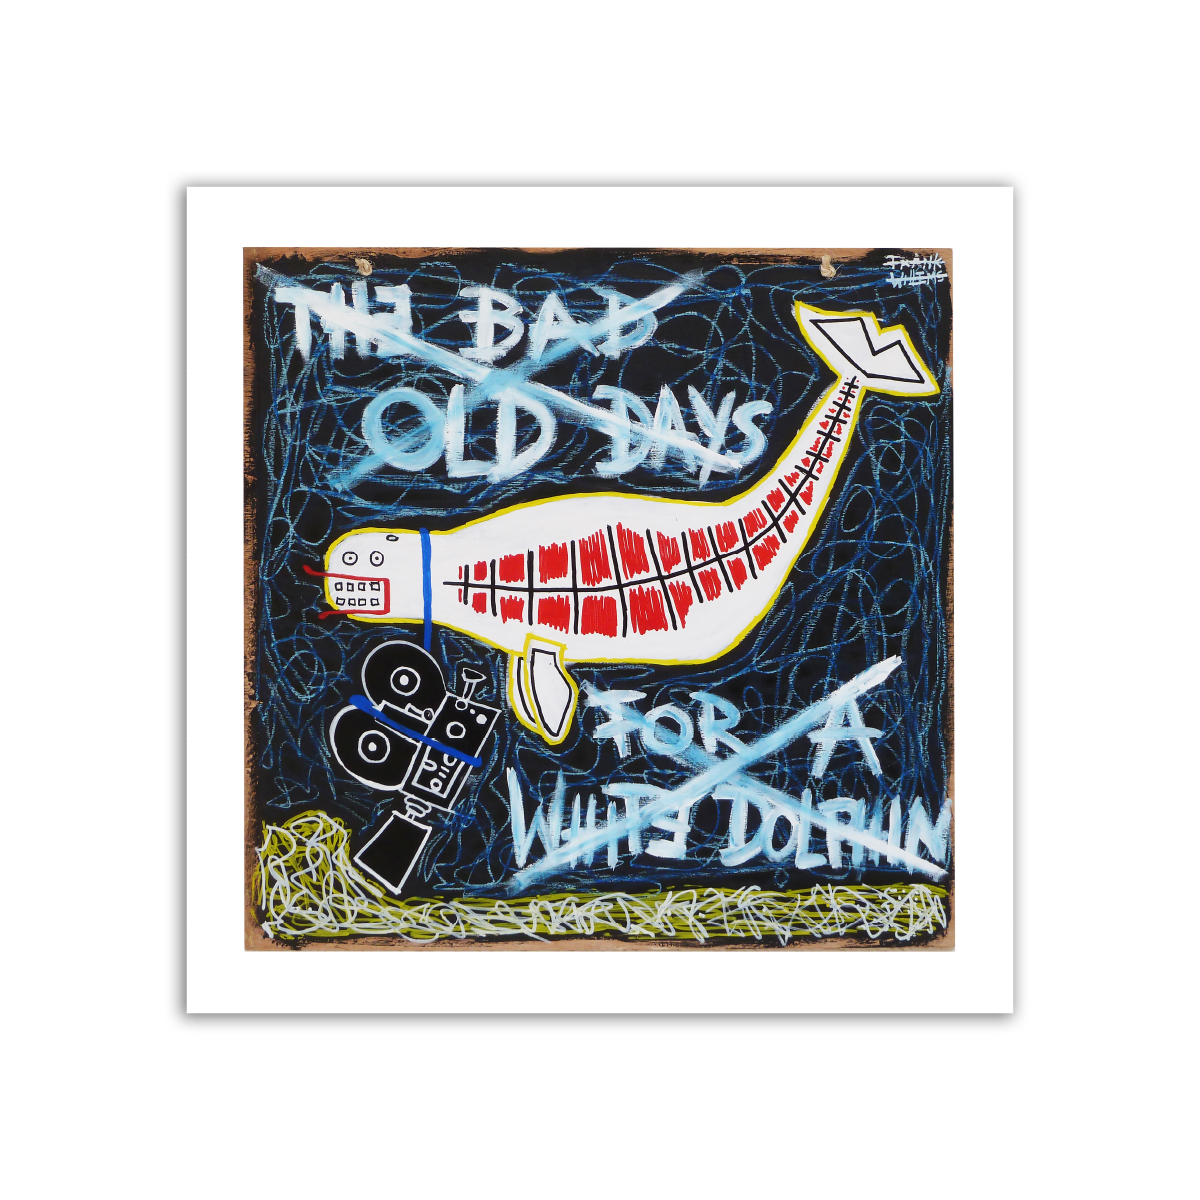 Limited prints - THE BAD OLD DAY OF A WHITE DOLPHIN - Frank Willems